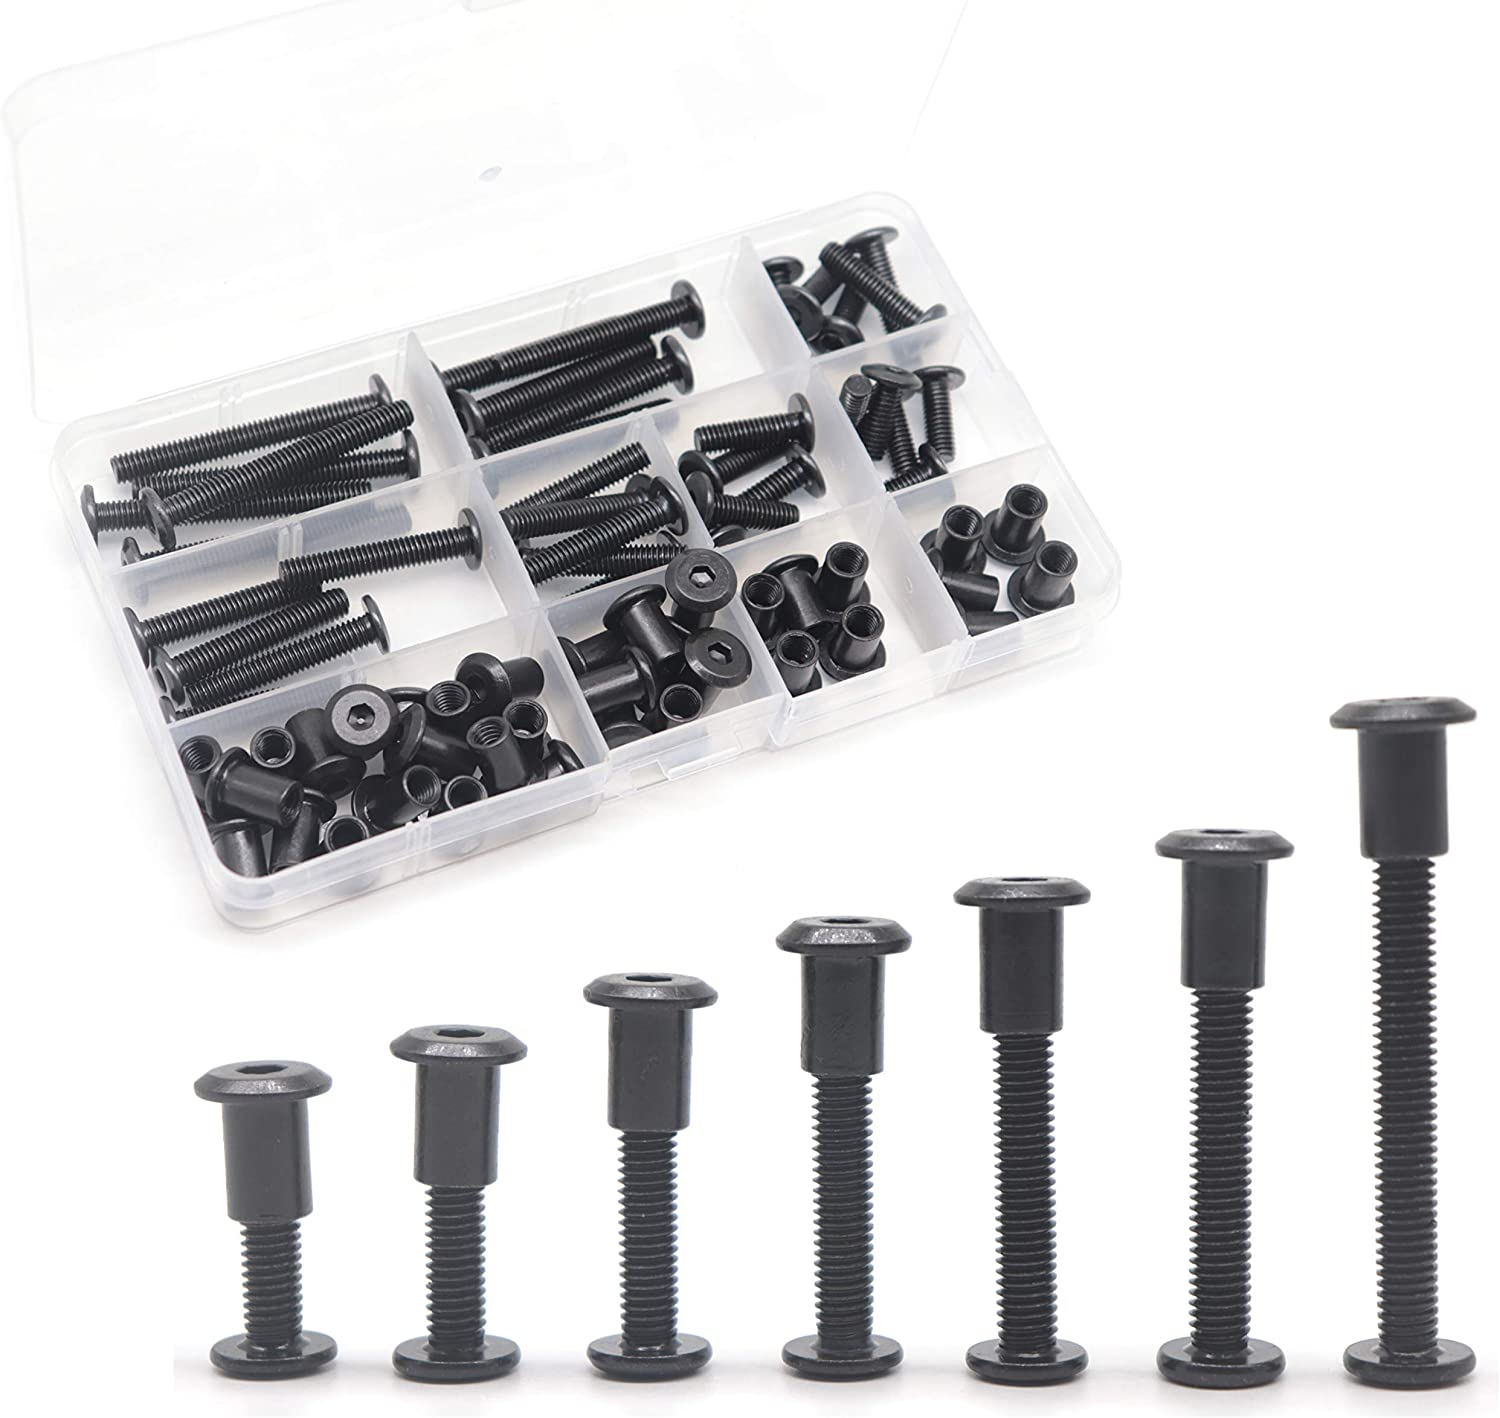 Baby Bed Crib Screws Hardware Replacement Kit 10-Set M6x70 mm Hex Socket Head Bolt and Barrel Nuts Assortment Kit